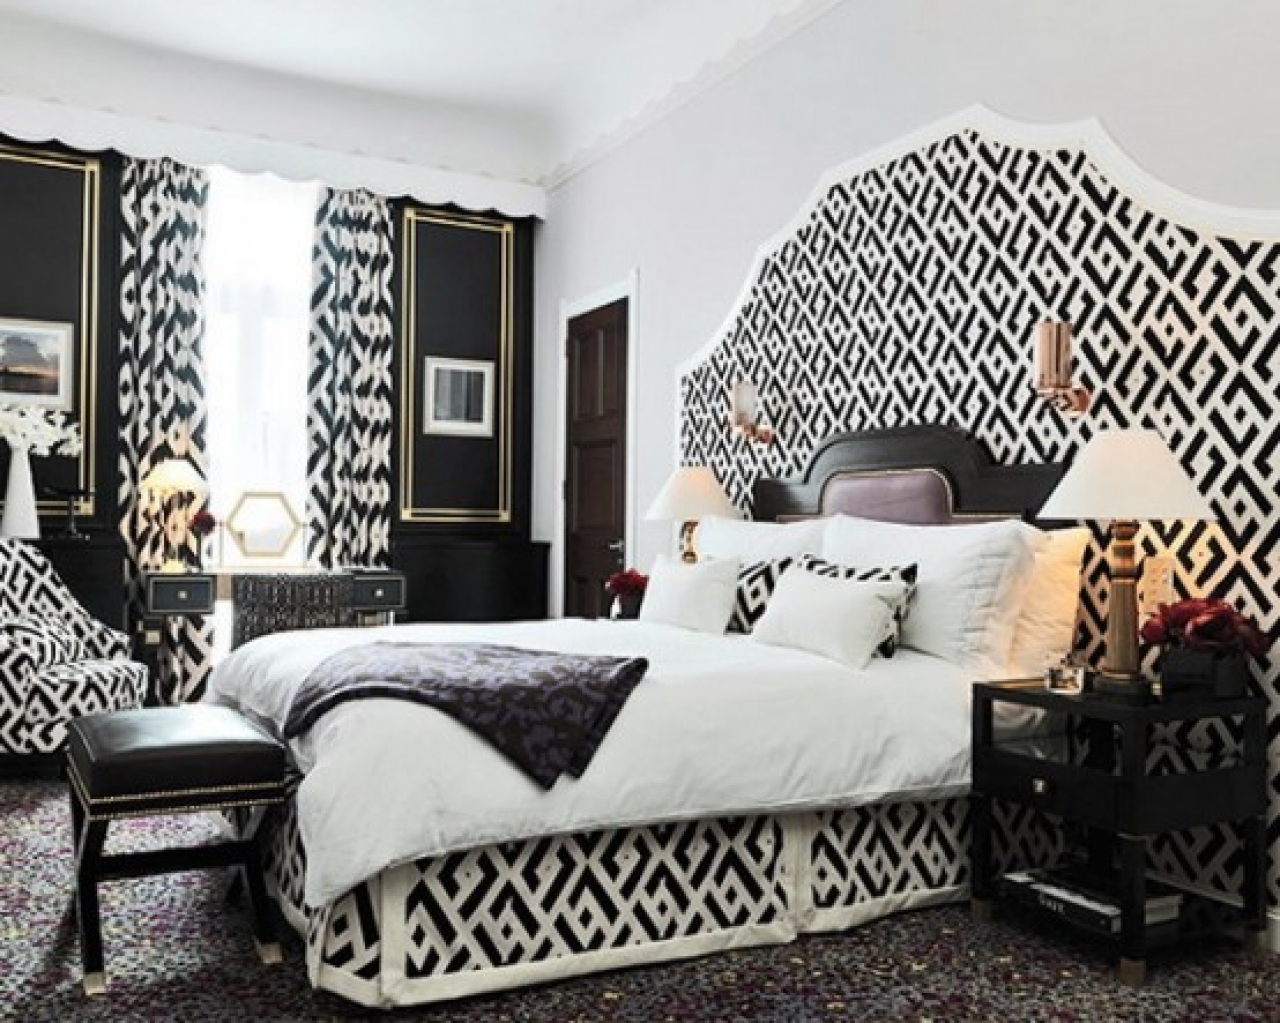 25 Black and White Glamour Decor Inspirations 14